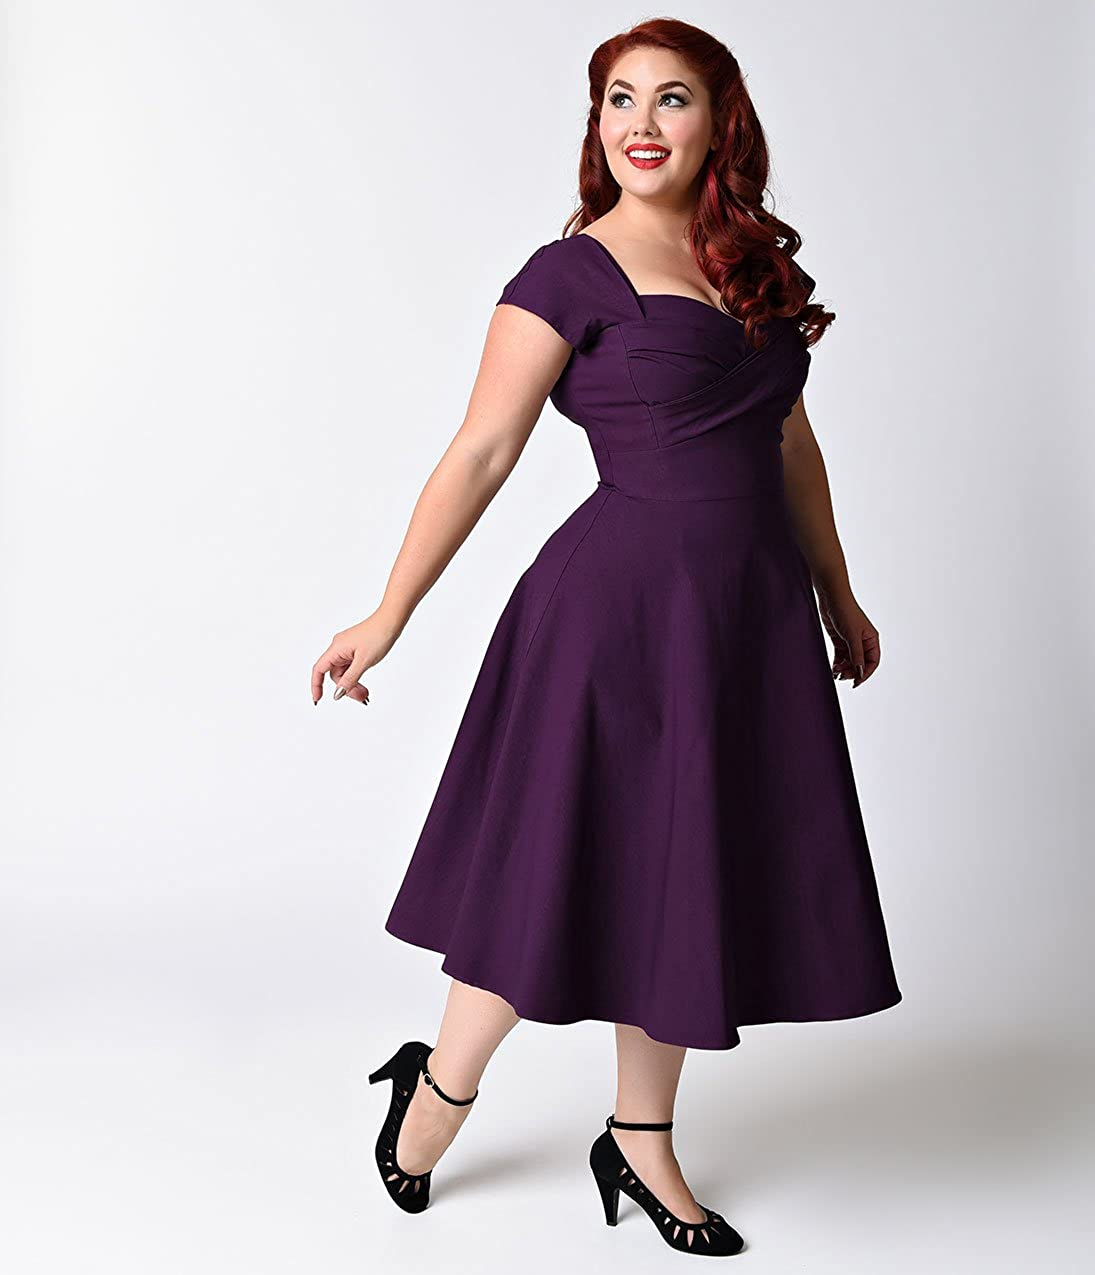 d0495854e7d Plus Size Mad Style Eggplant Cap Sleeve Swing Dress at Amazon Women s  Clothing store